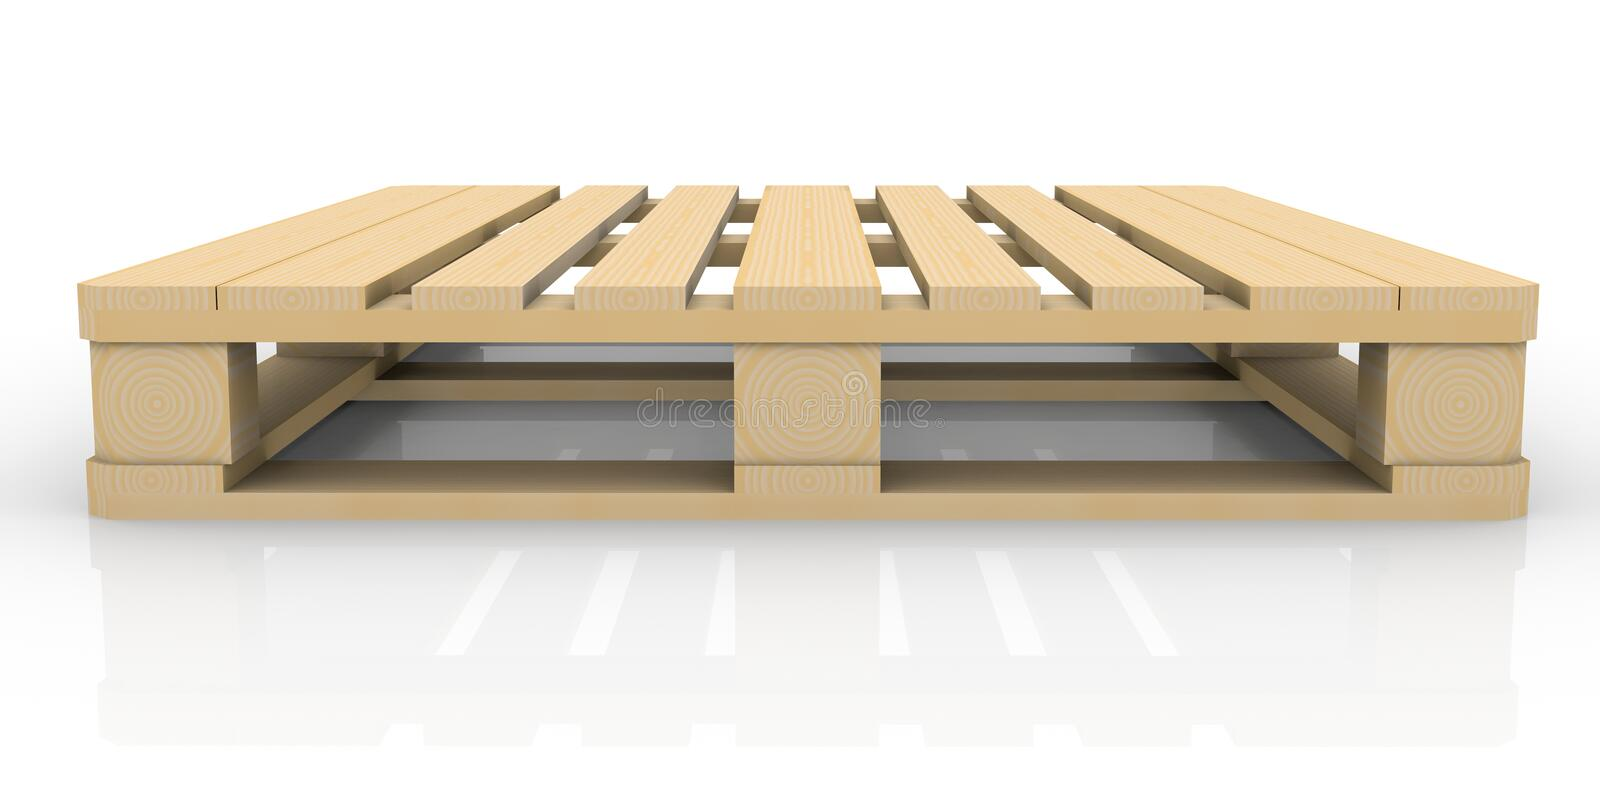 Wooden pallet royalty free illustration